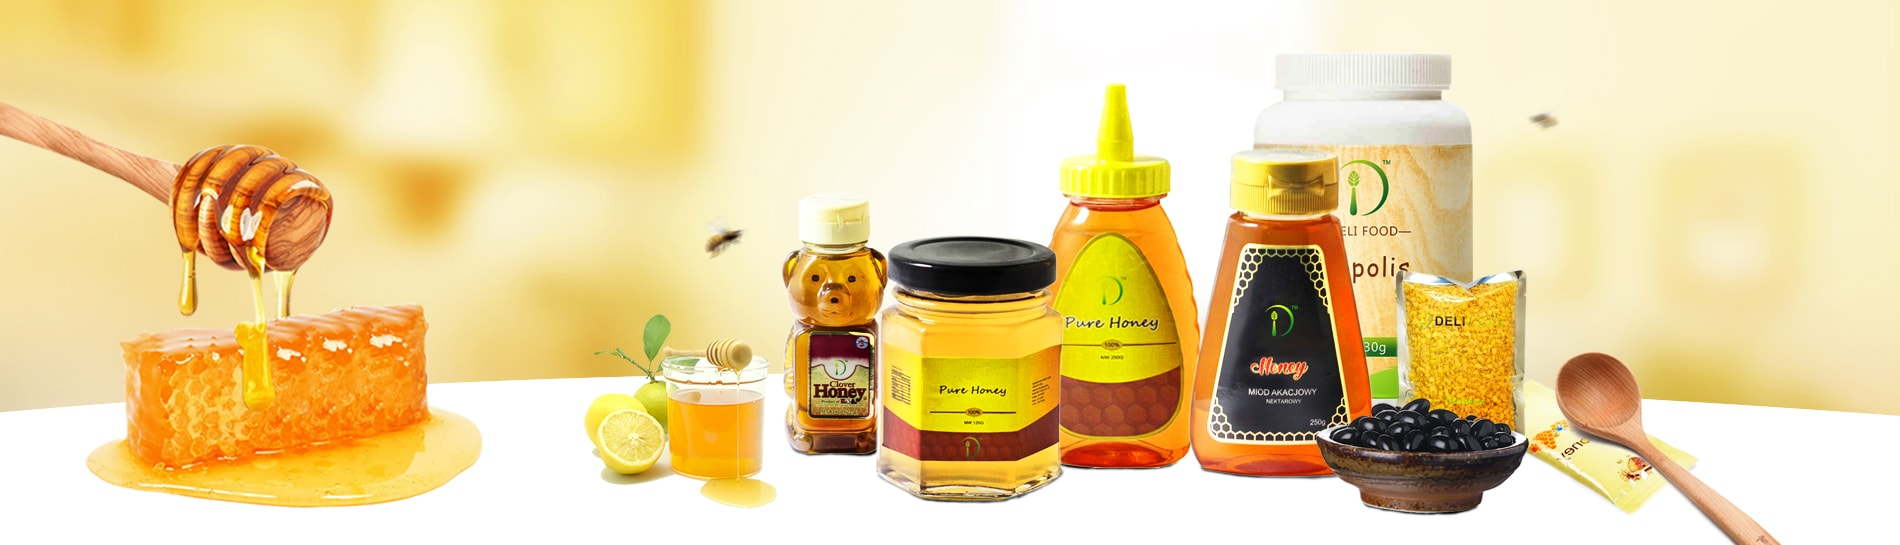 Delifoods-BEE PRODUCTS2